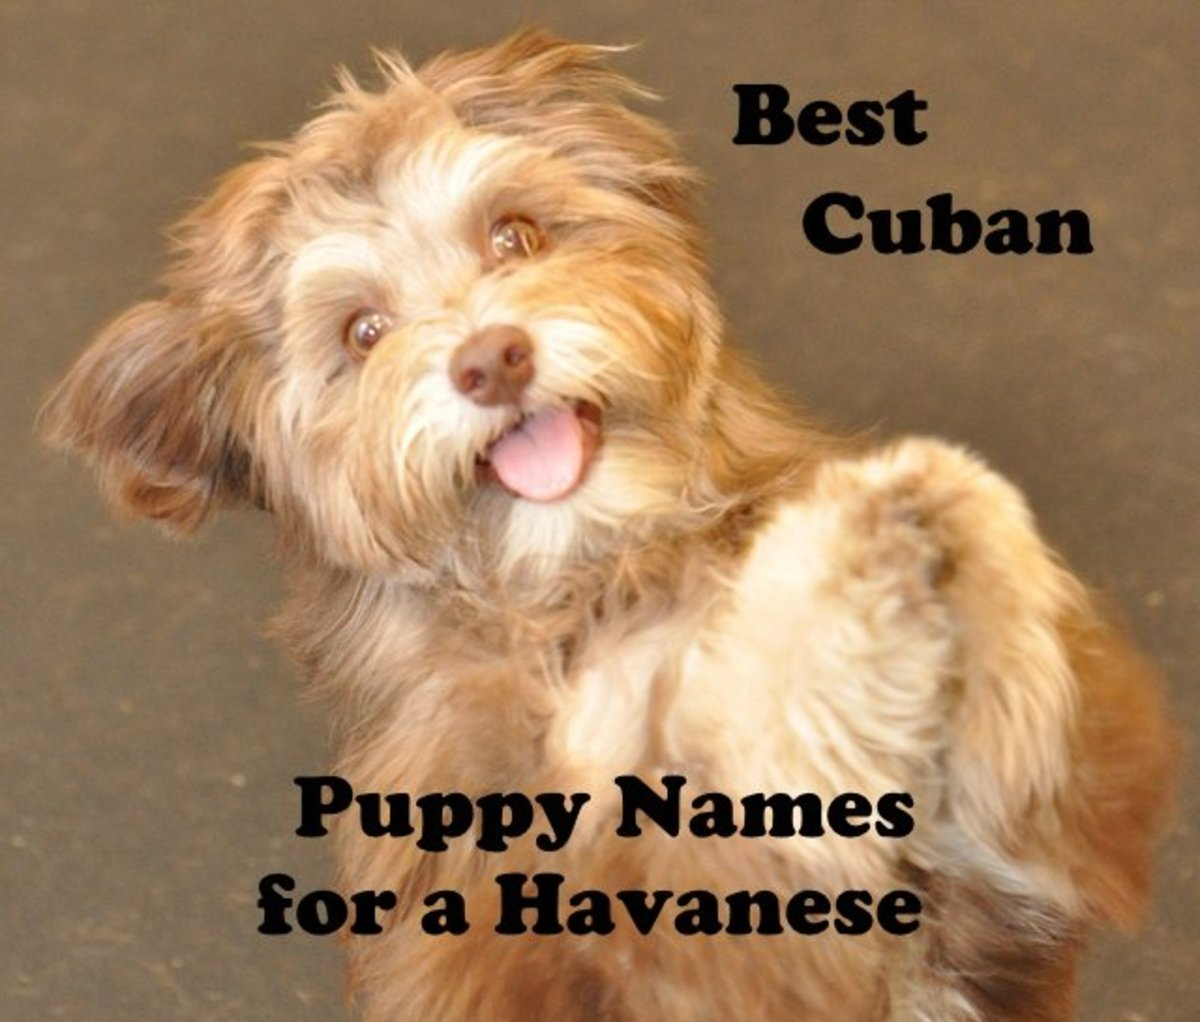 Best Puppy Names for Havanese Dogs